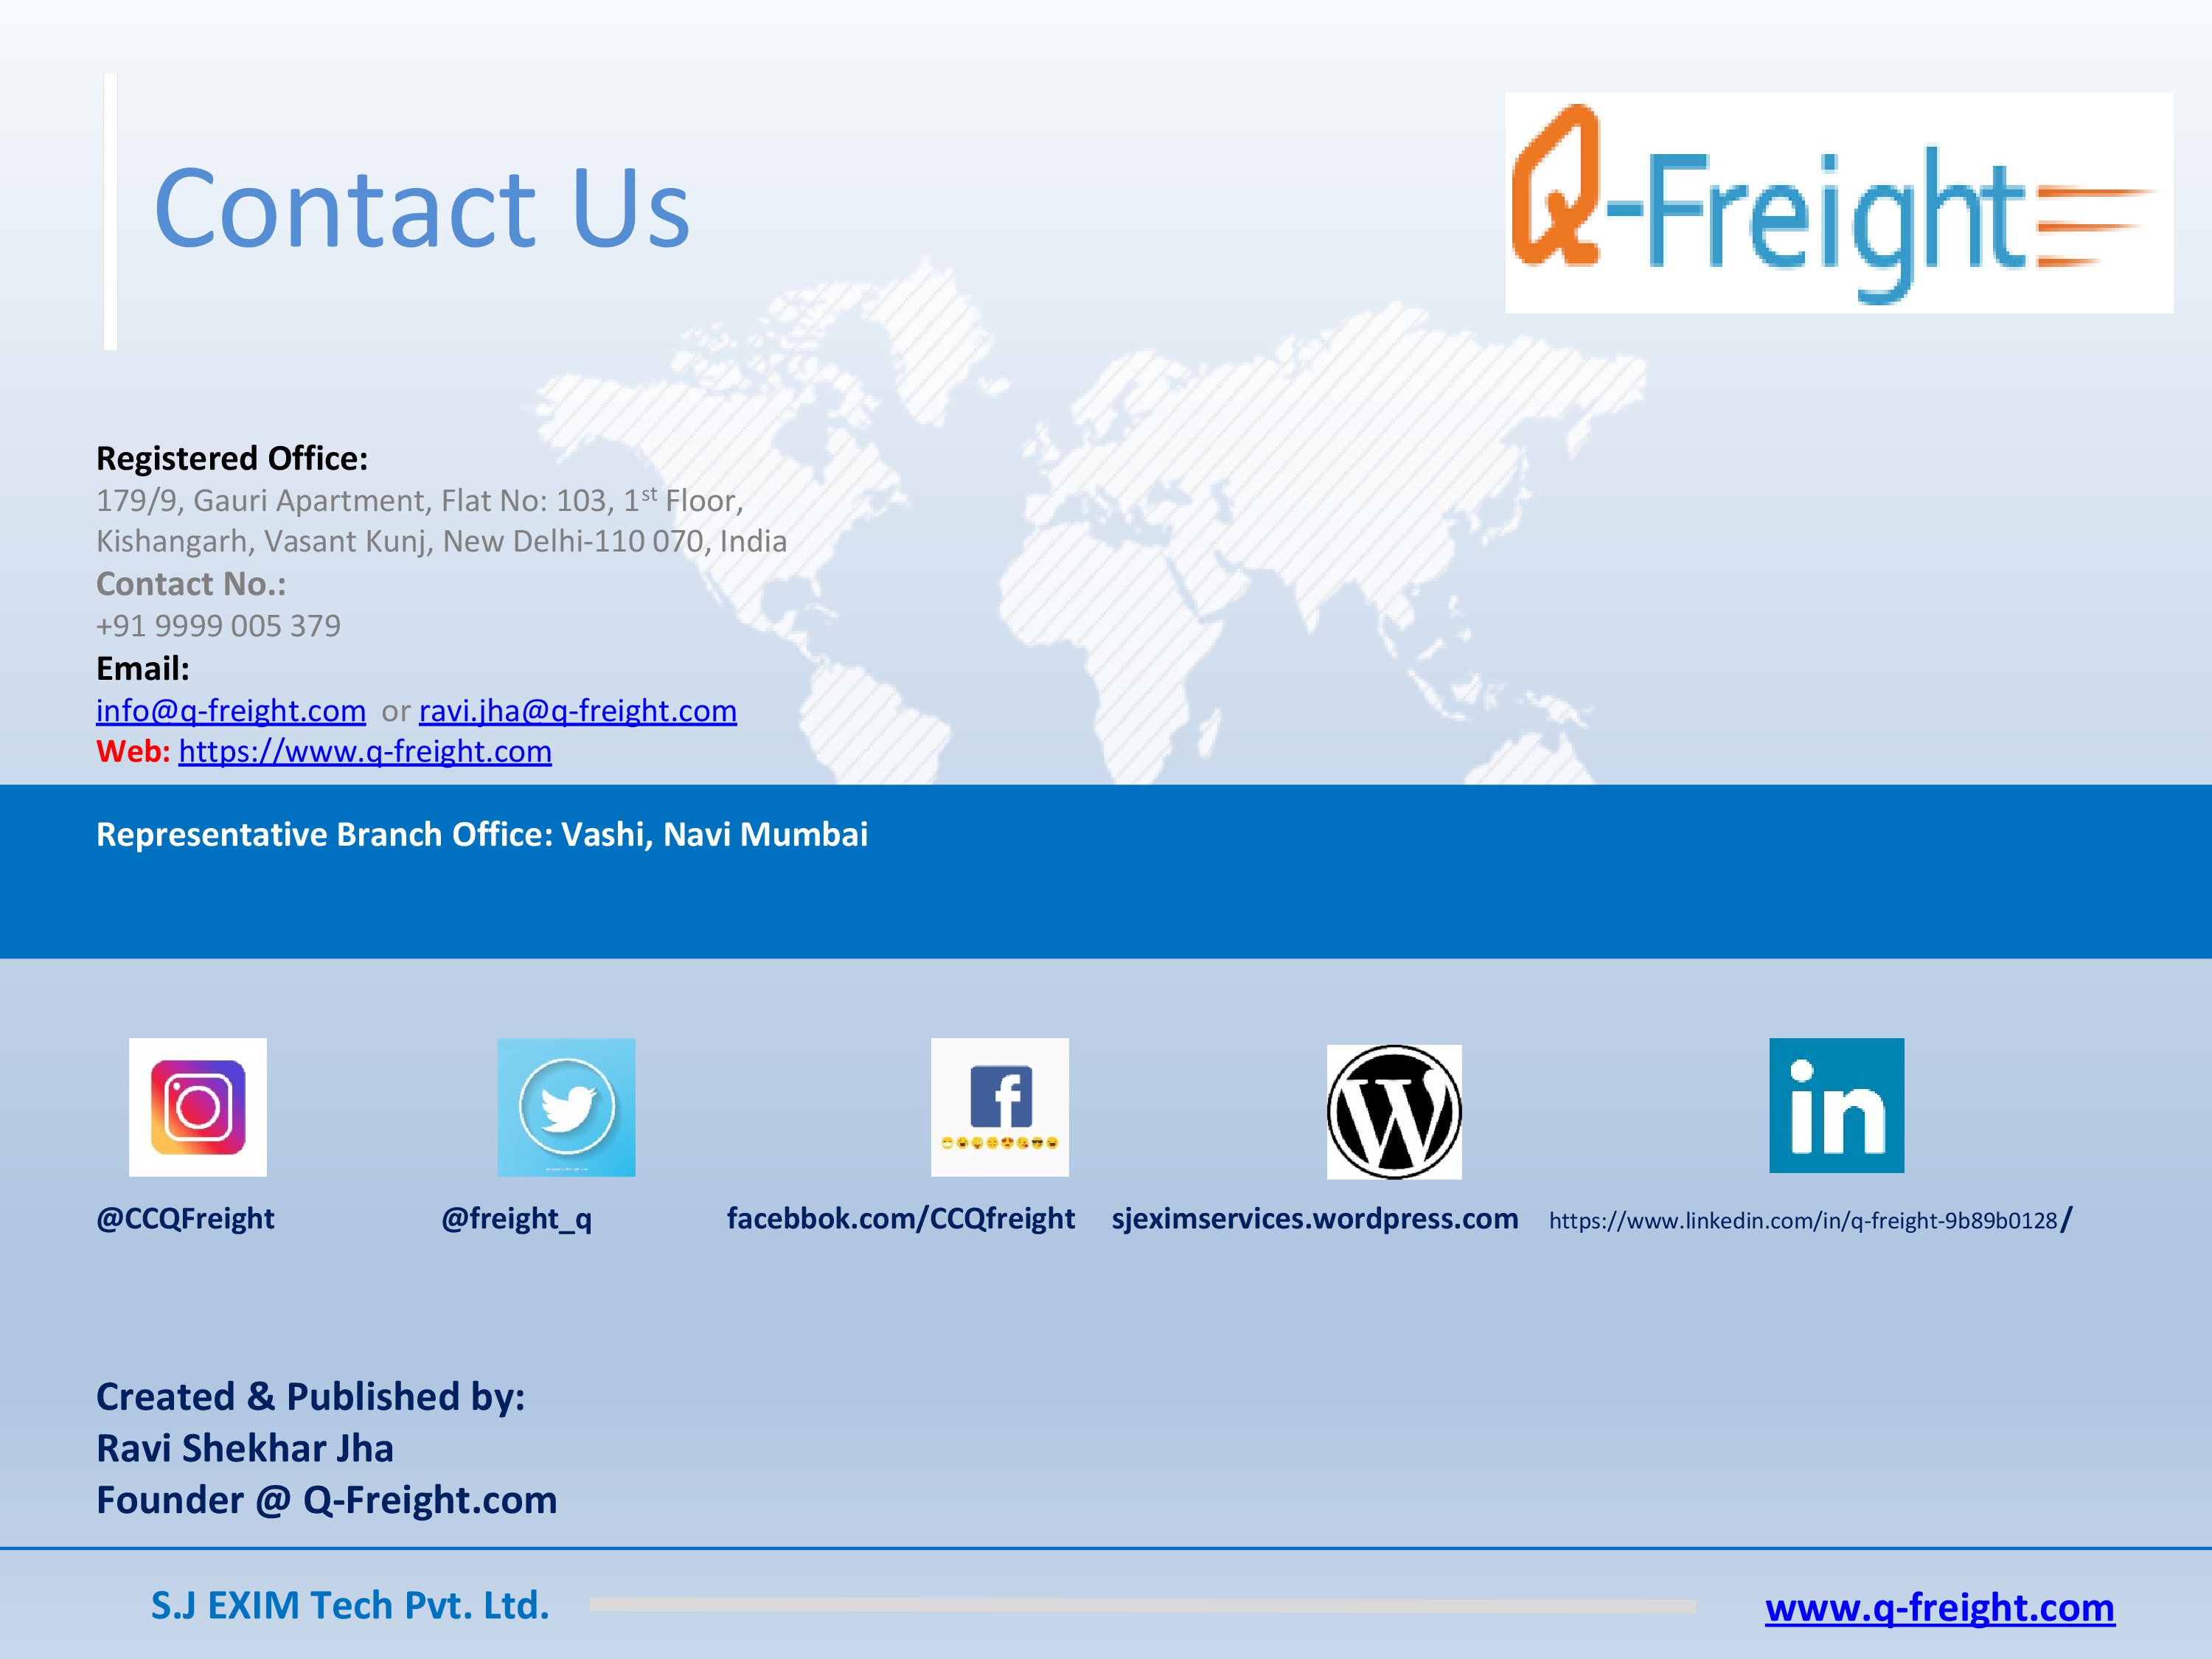 Q-Freight-India's First NEUTRAL eFreight Marketplace Project-Some Key Features